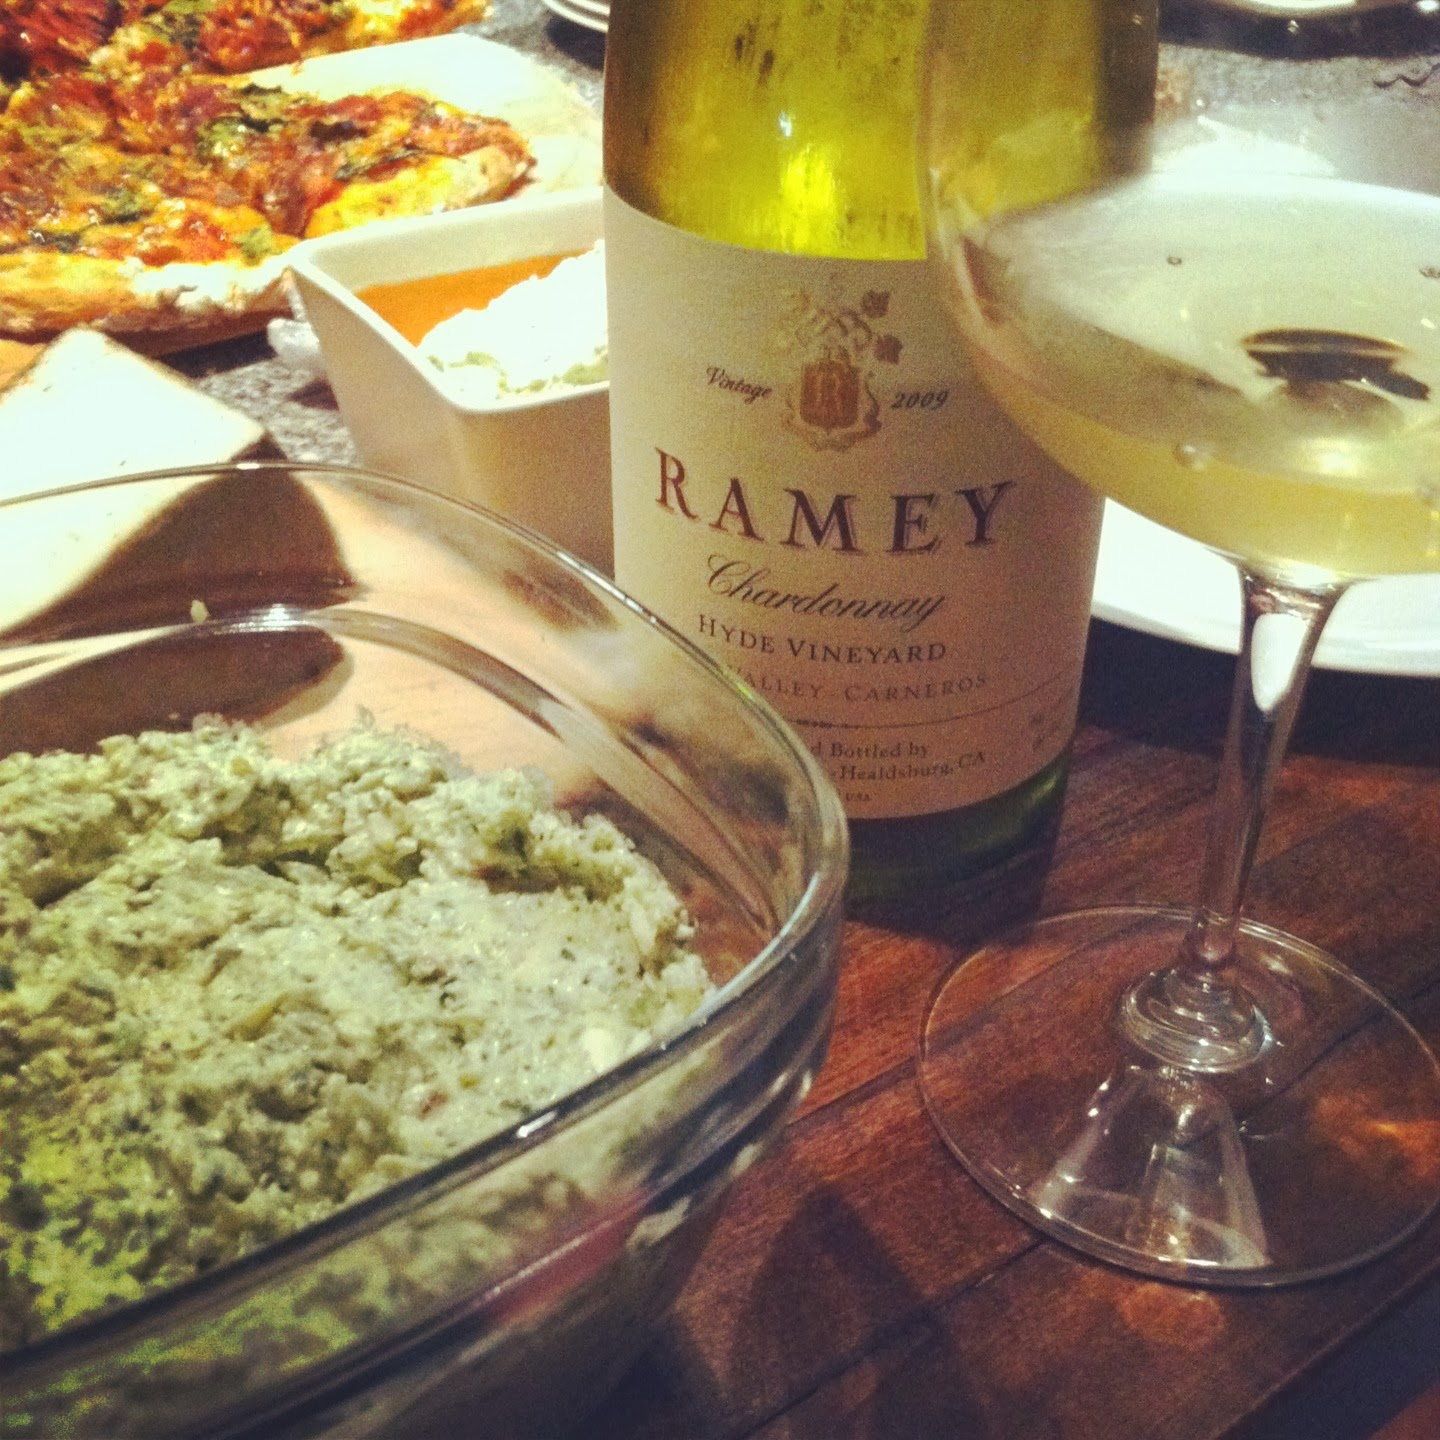 Ramey Chardonnay, a Cooking Chat #Wine of Note selection